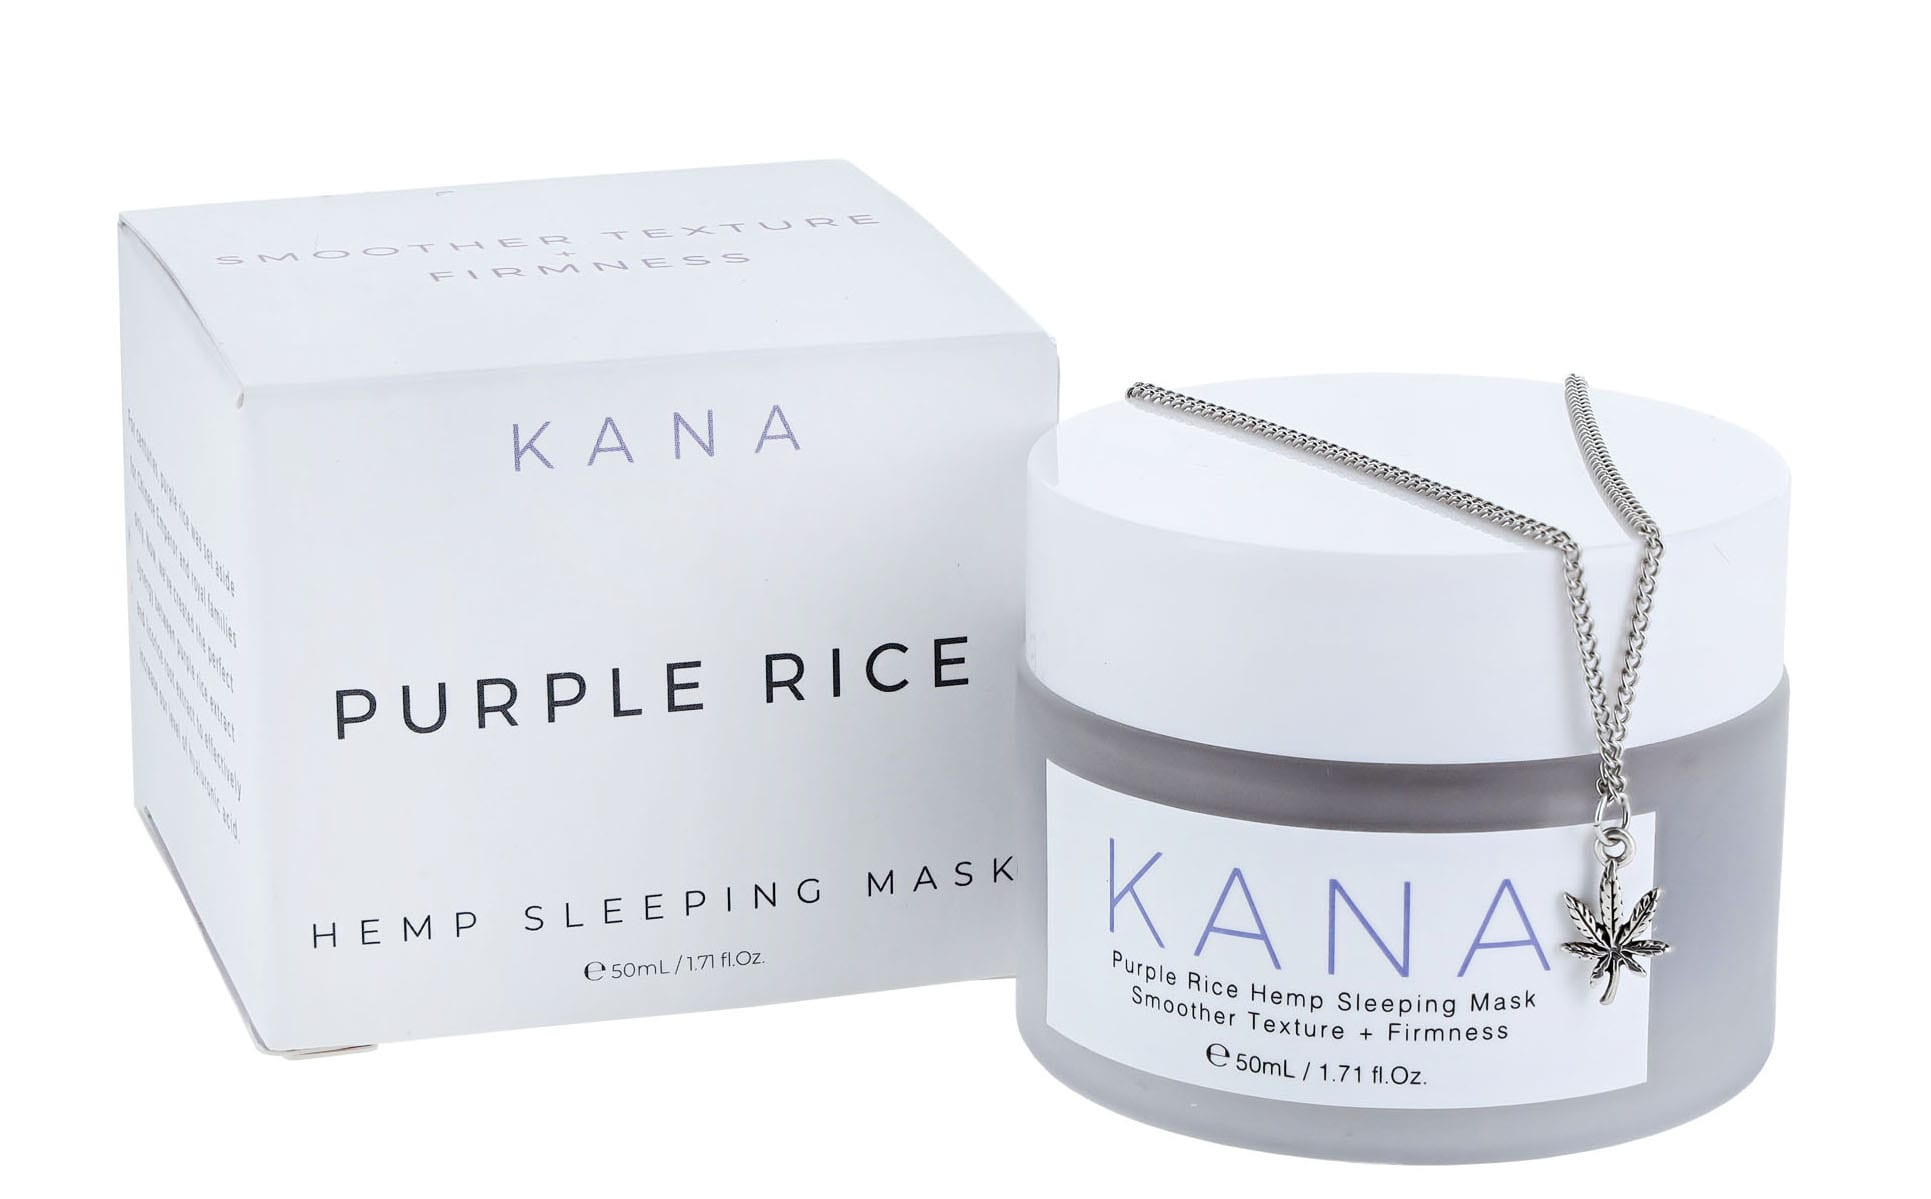 purple-rice-with-box-with-necklace-pure-white